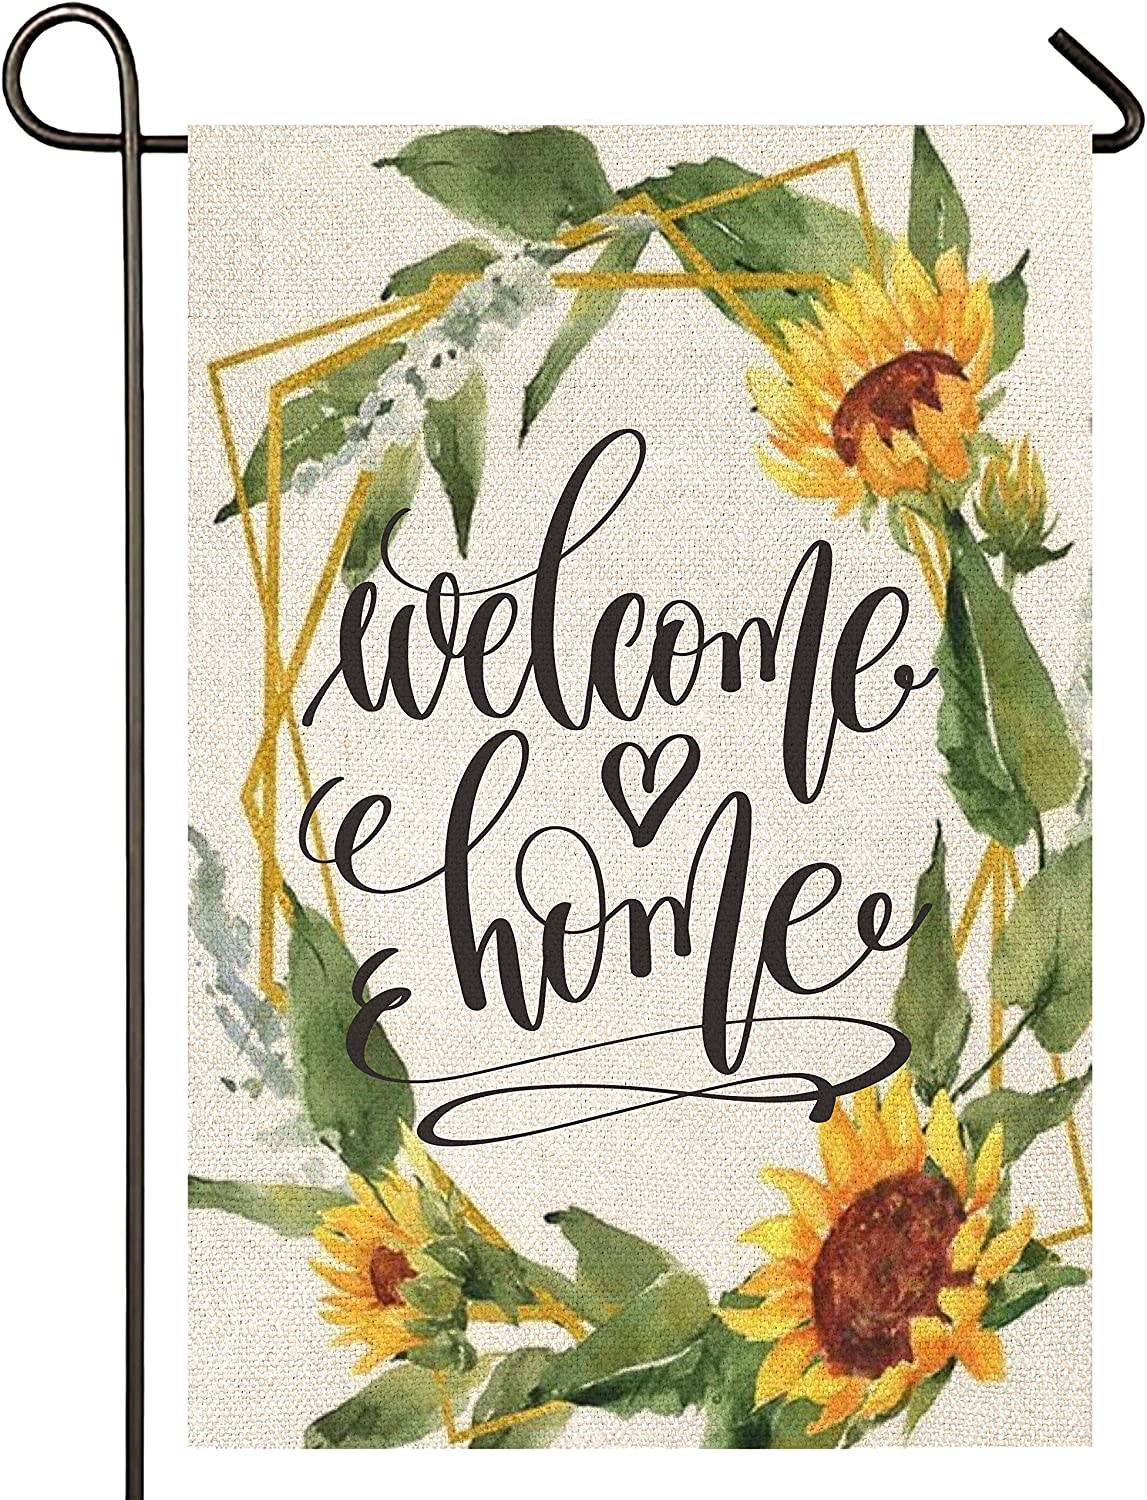 Atenia Welcome Home Sunflower Garden Burlap Flag, Double Sided Sunflower Wreath Welcome Sign Garden Outdoor Yard Flags for Summer Decor (Garden Size - 12.5X18)